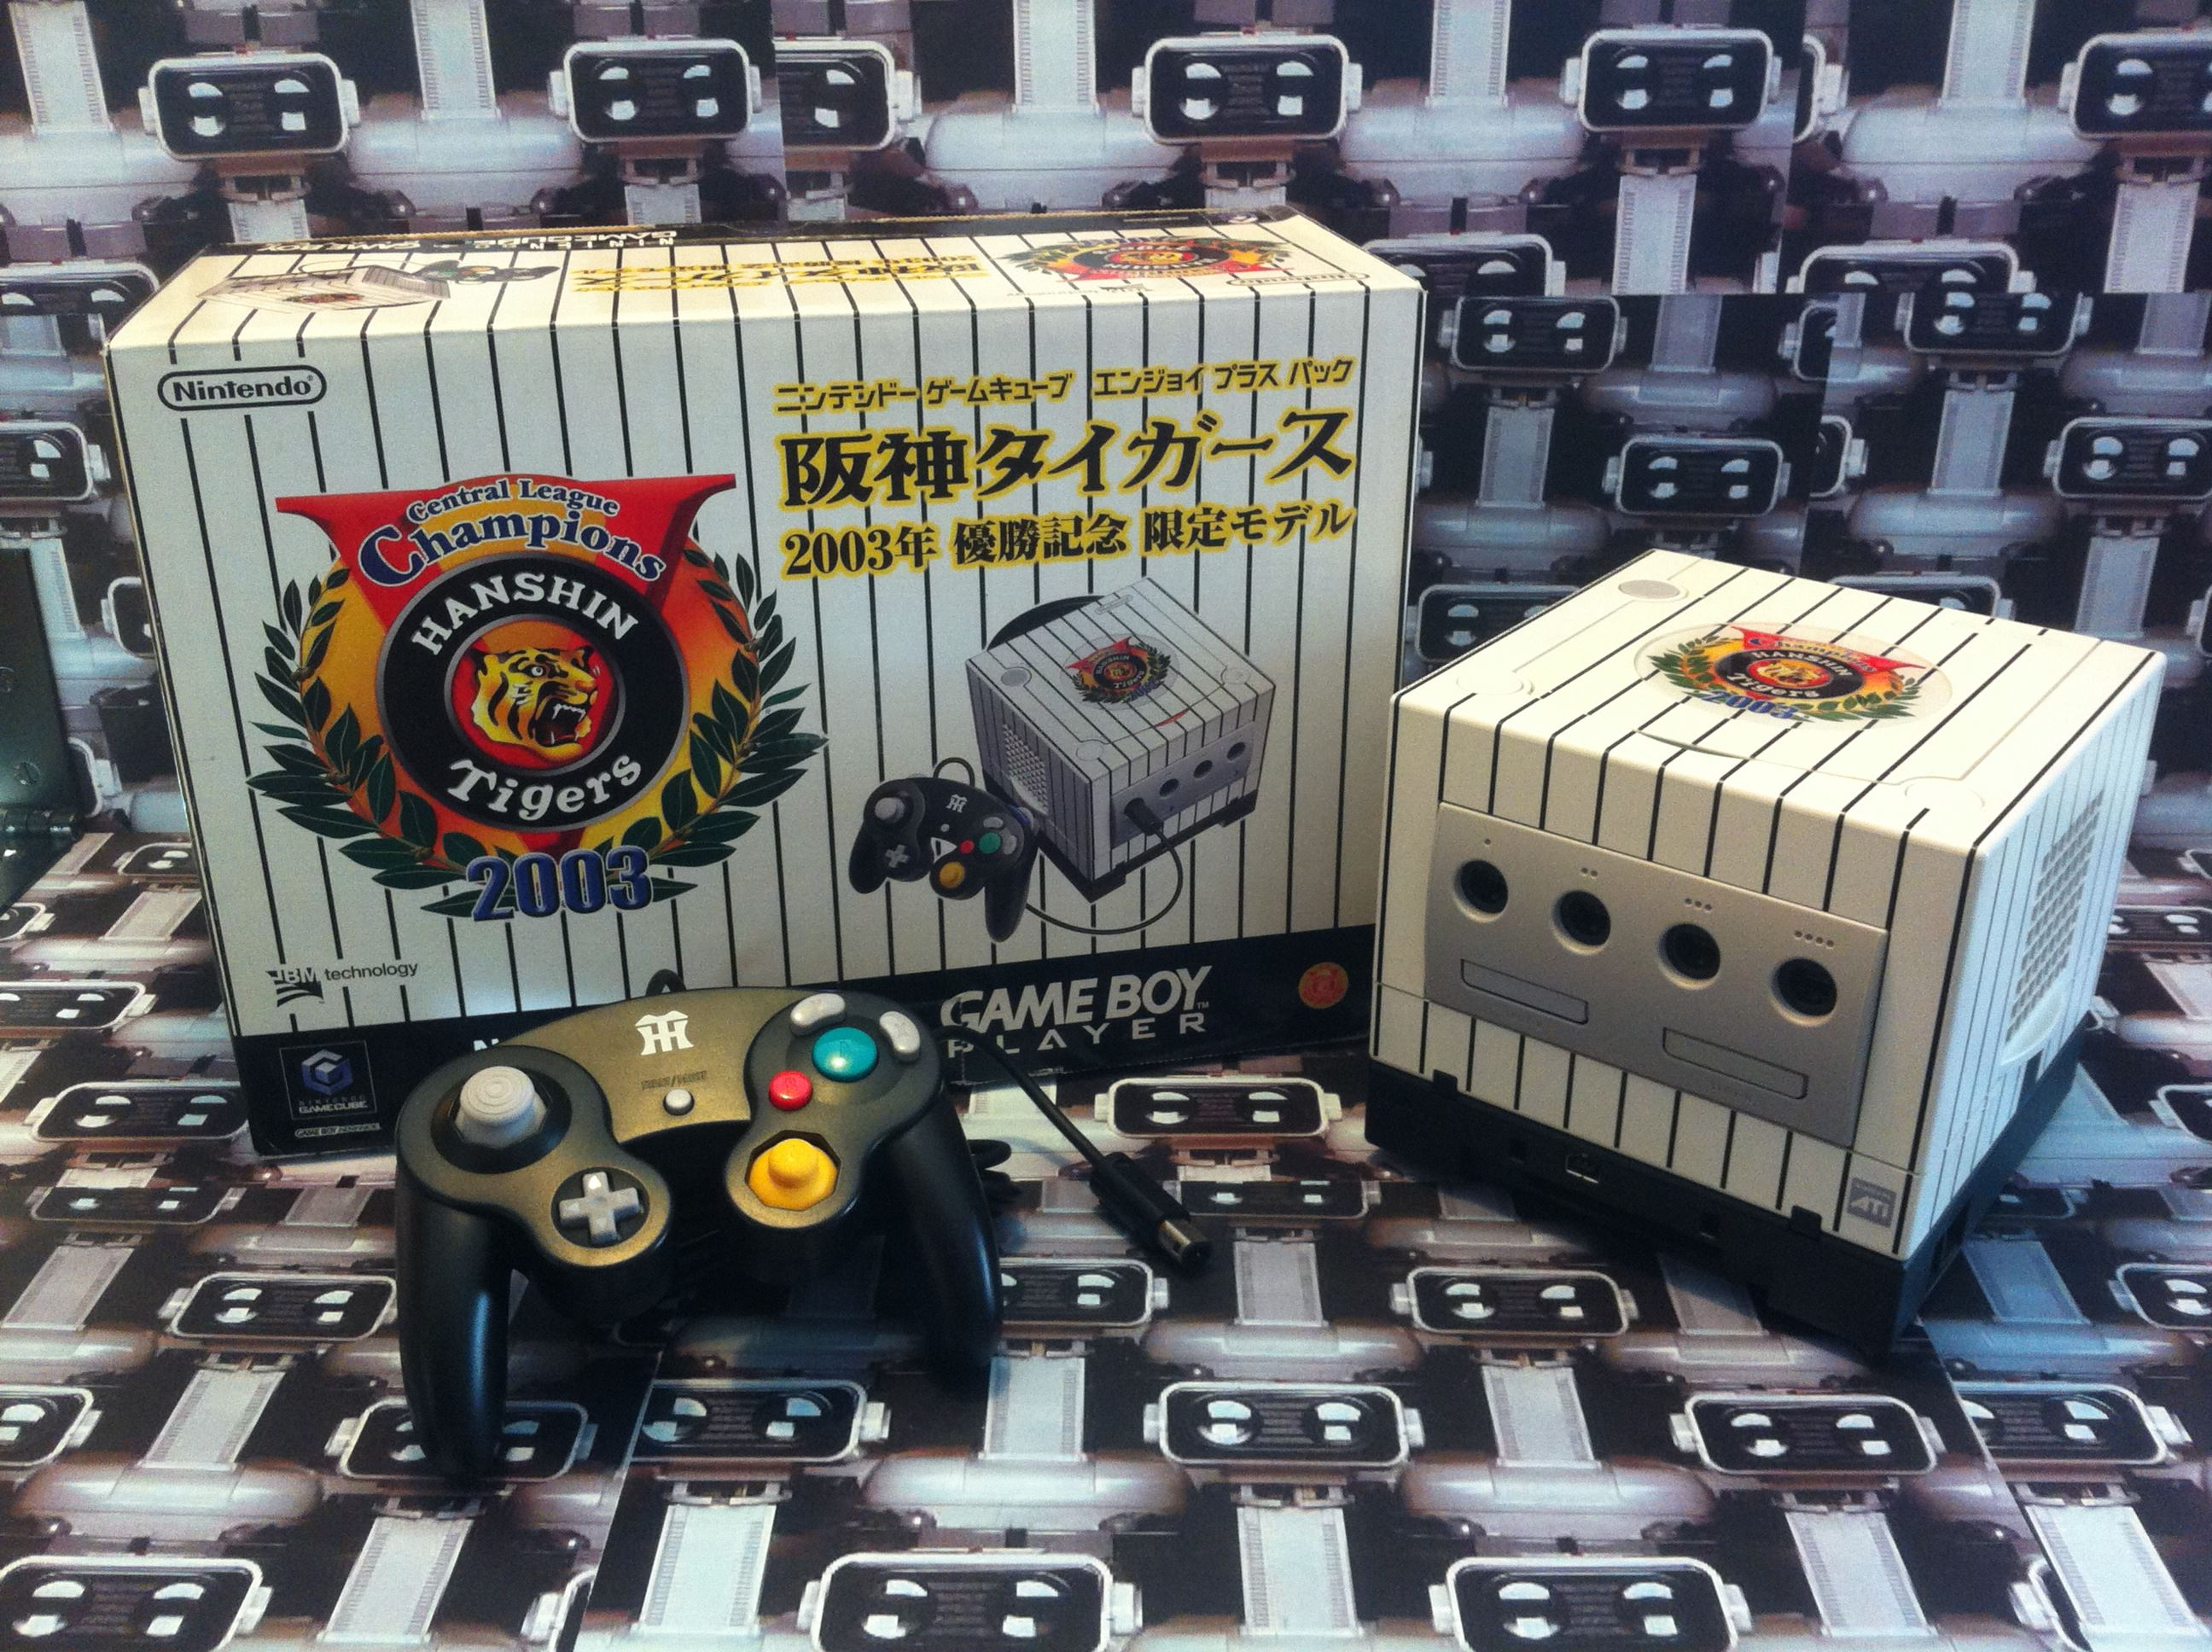 www.nintendo-collection.com - Gamecube Hanshin Tigers 2003 Champions Baseball Limited Edition Japane